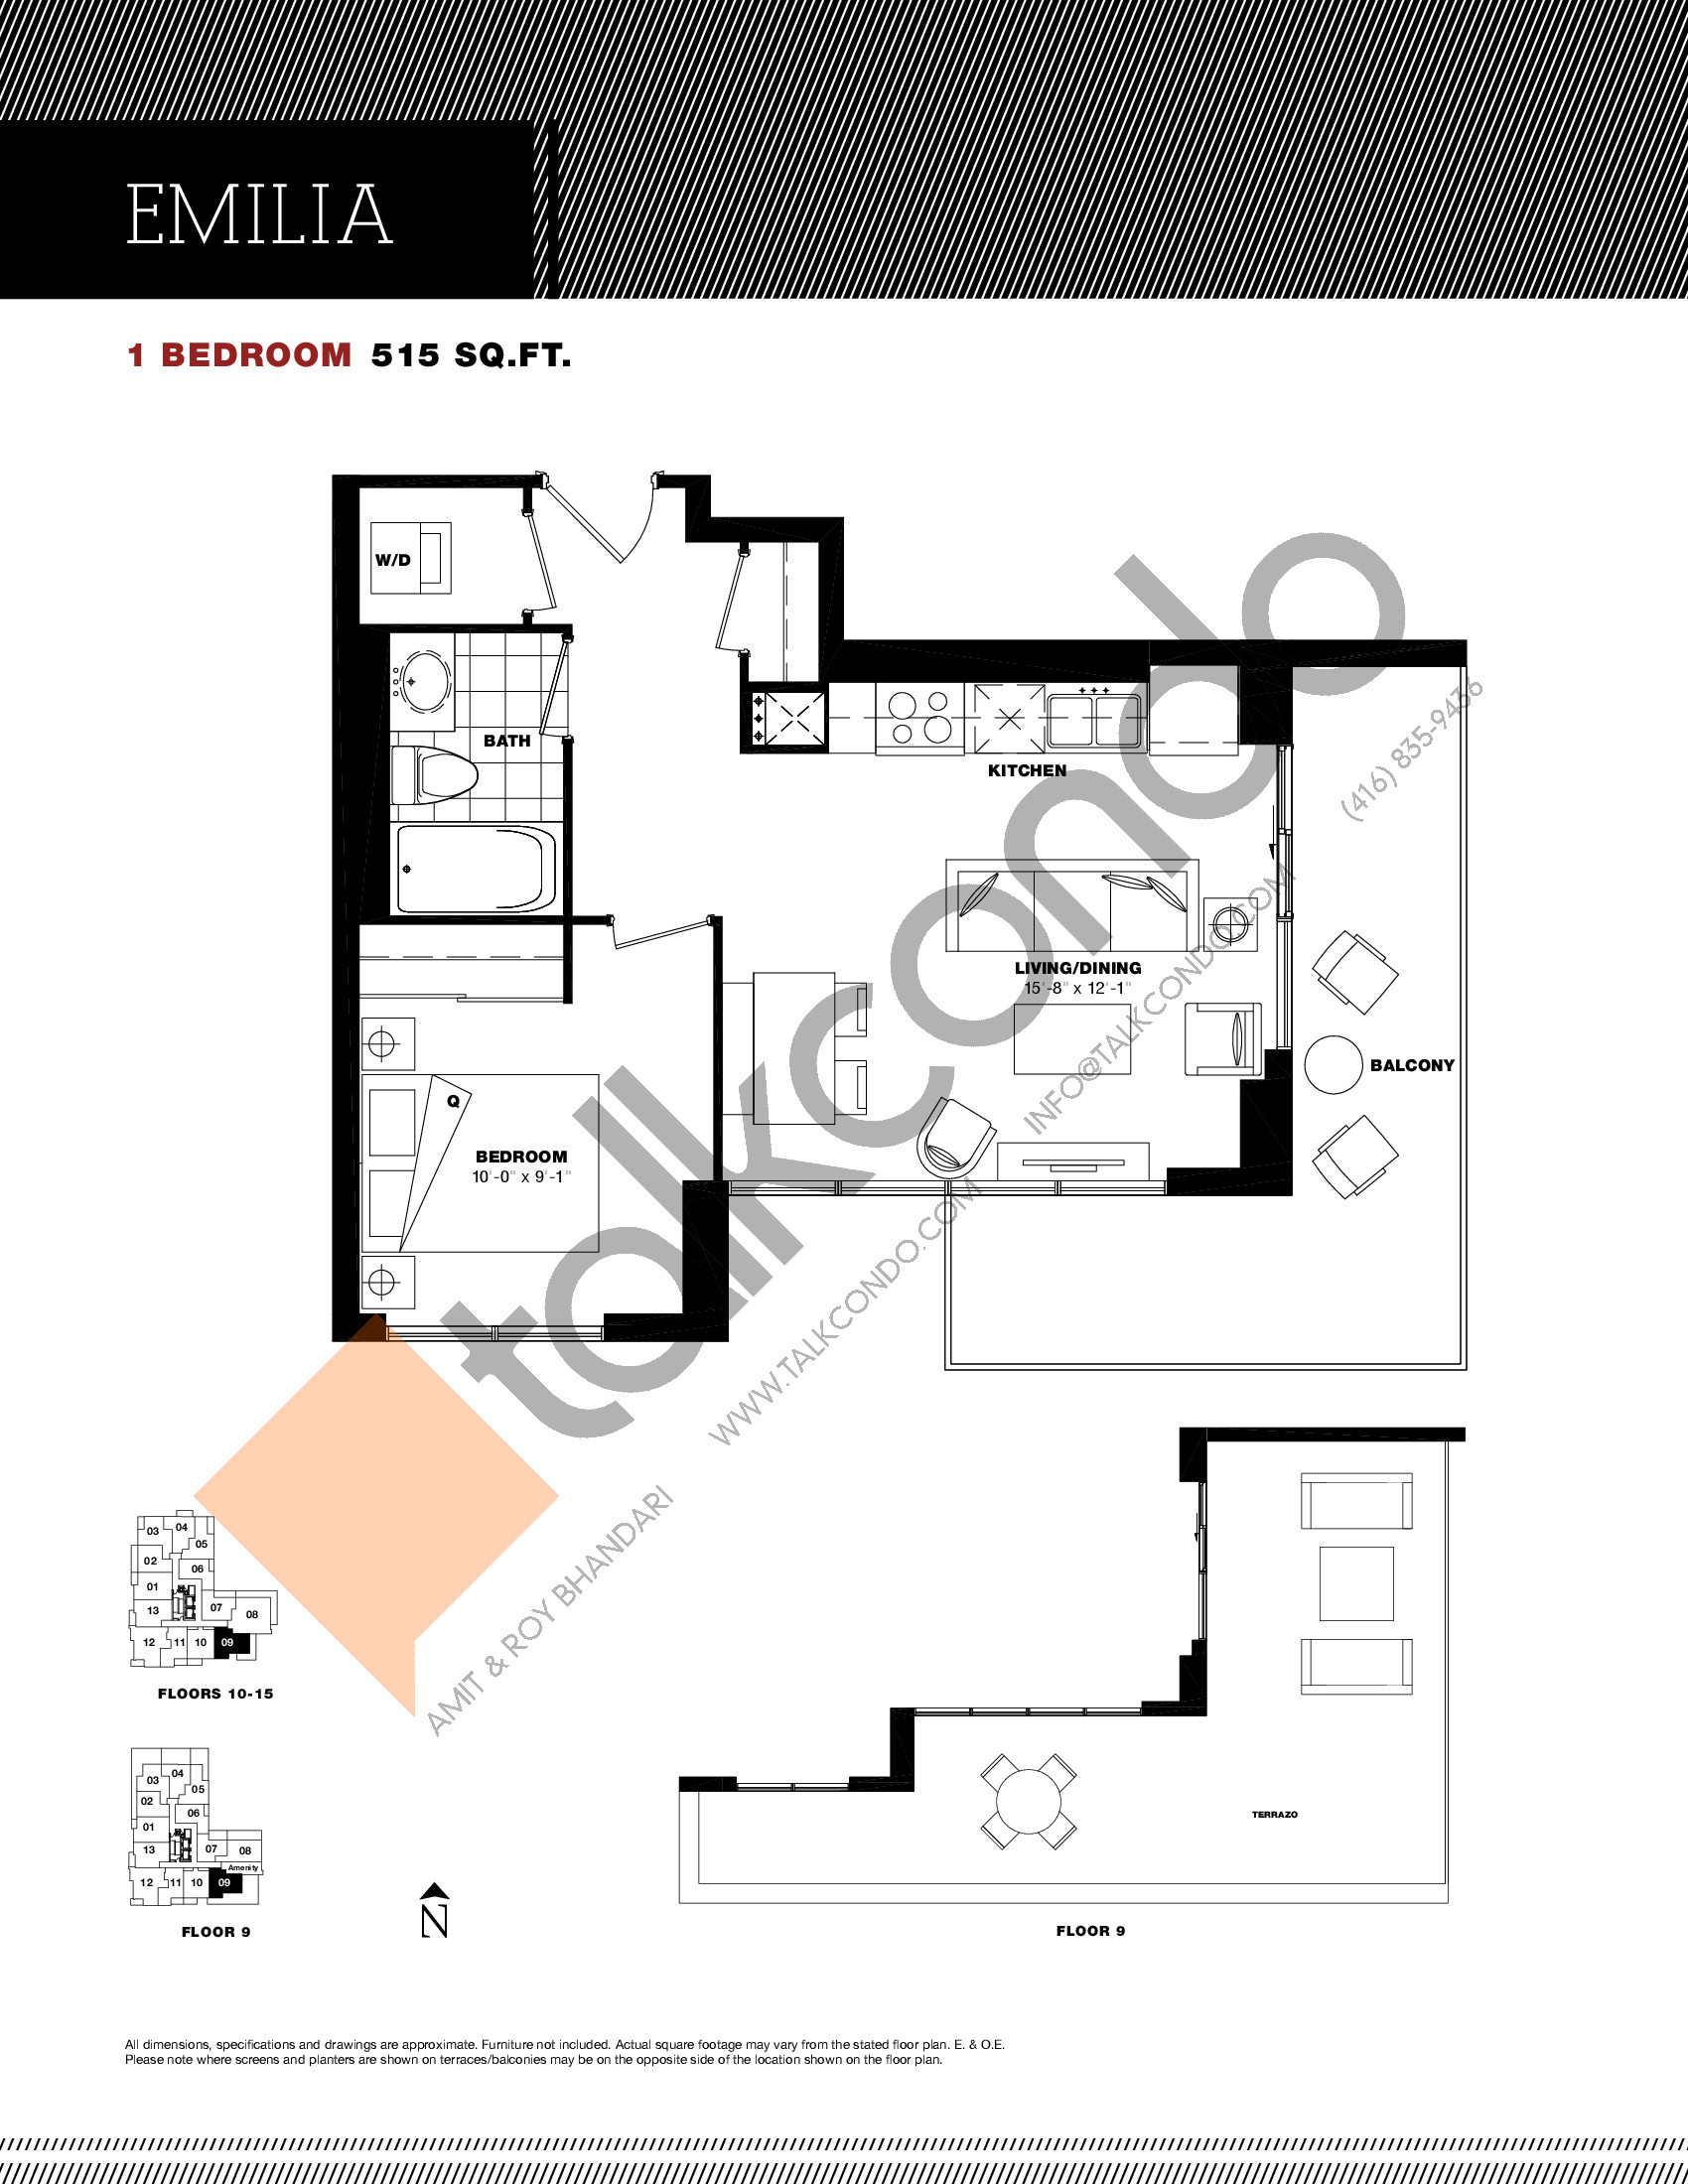 Emilia Floor Plan at Residenze Palazzo at Treviso 3 Condos - 515 sq.ft